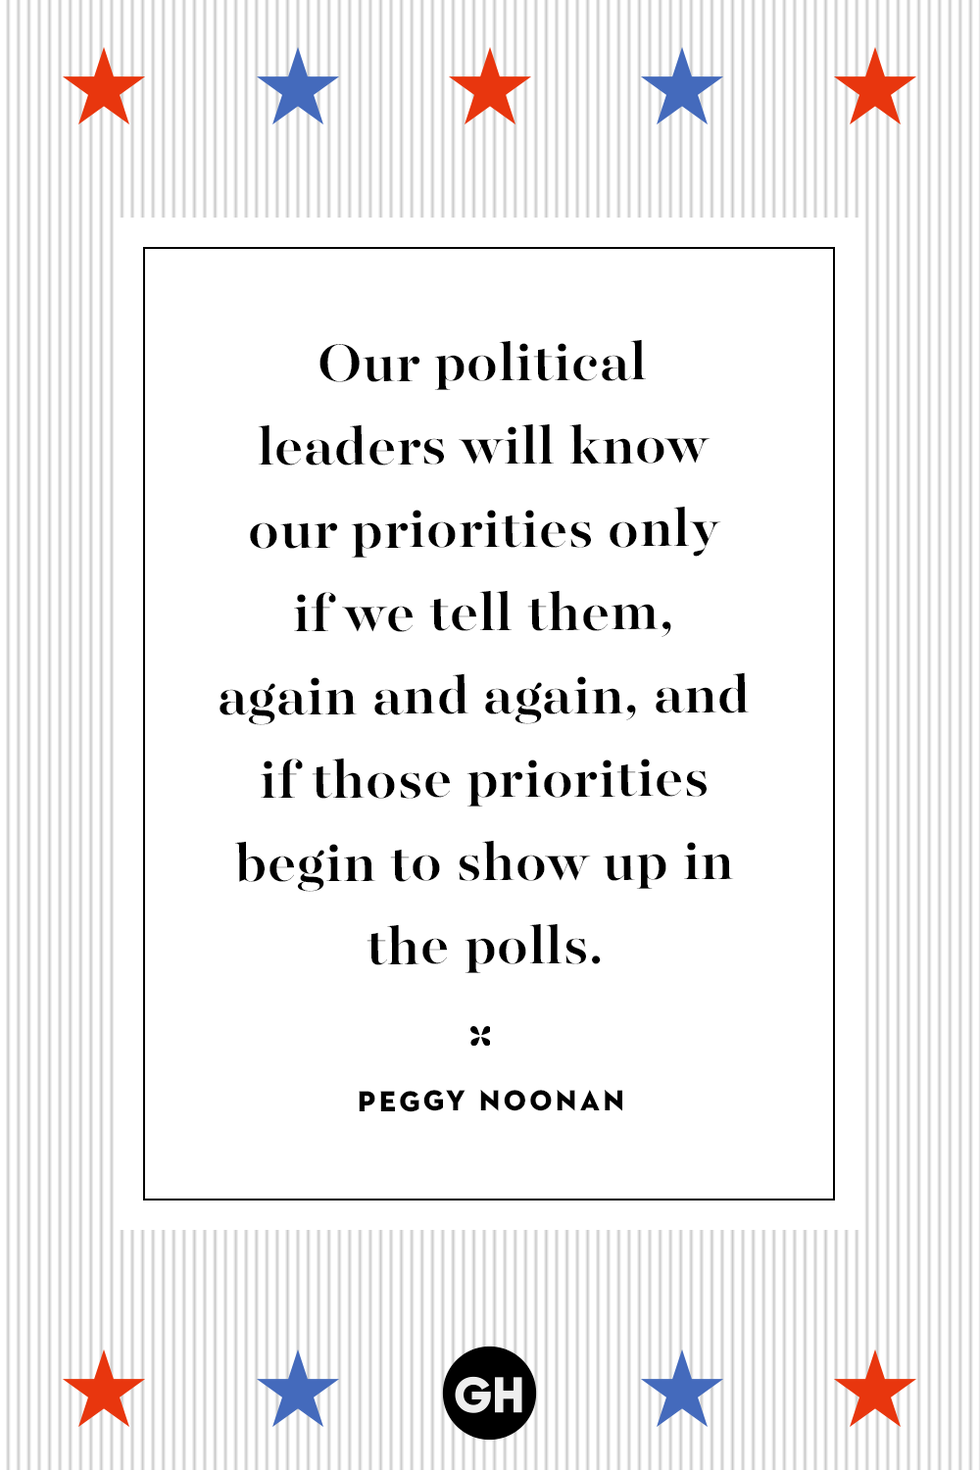 election-quotes-voting-quotes-04-peggy-noonan-1567019363